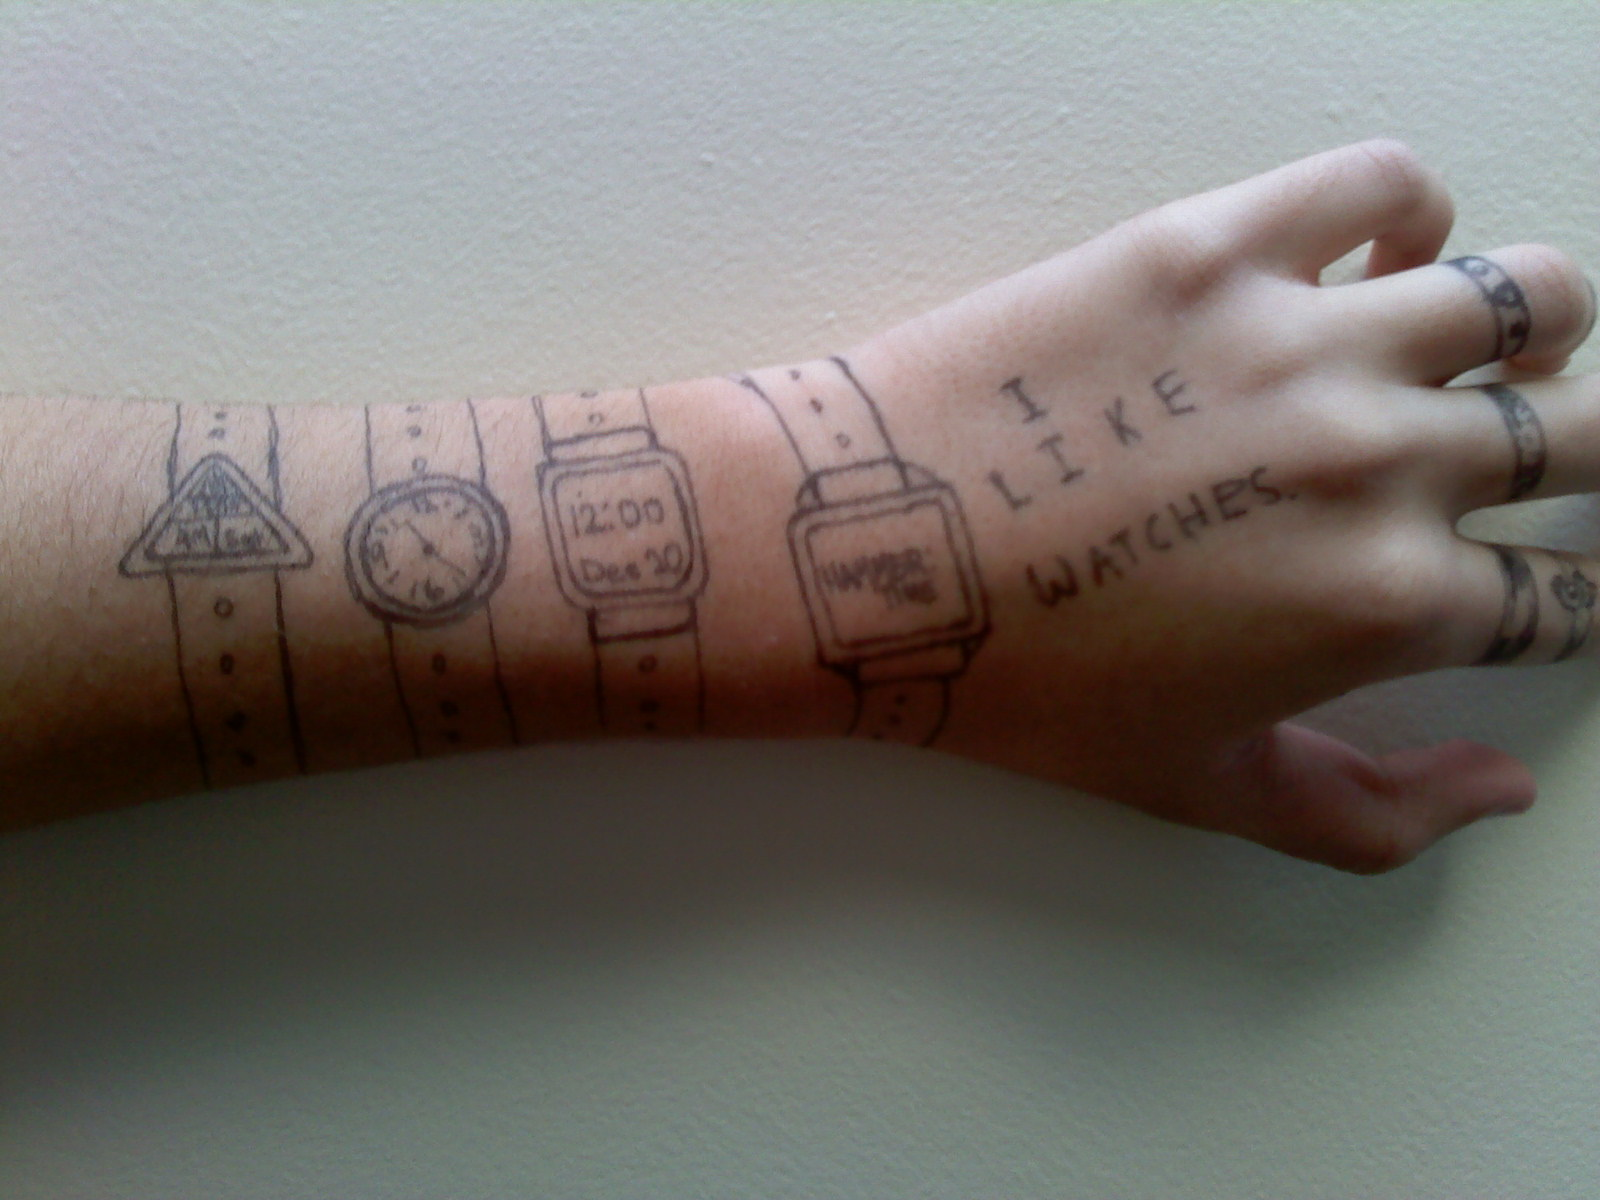 1600x1200 Draw On Your Handarm! Let's Make A Drawing